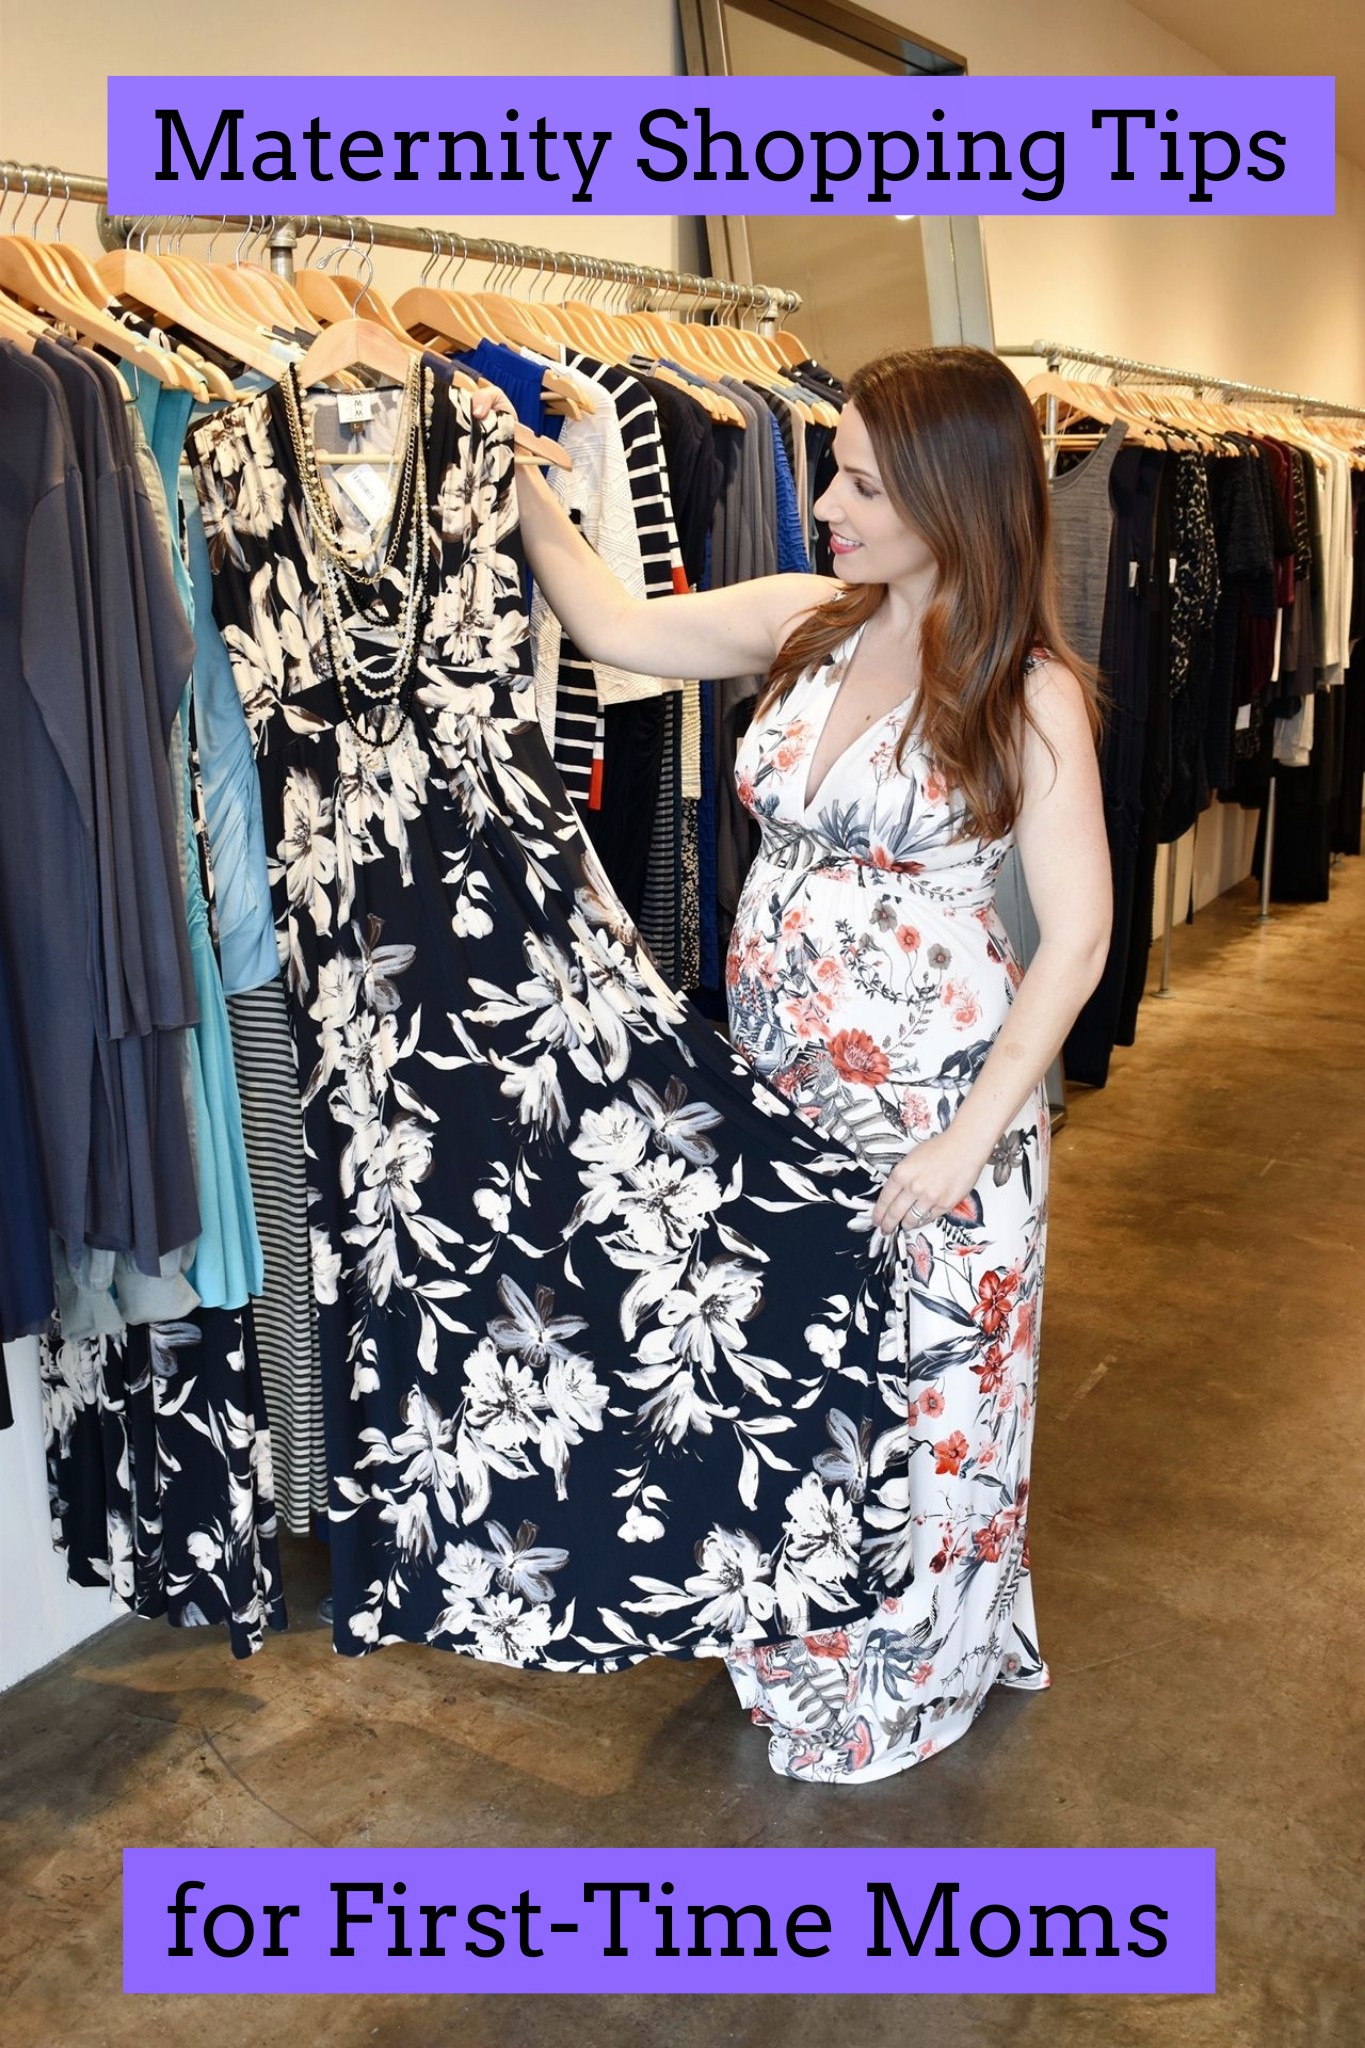 Maternity Shopping Tips for First-Time Moms